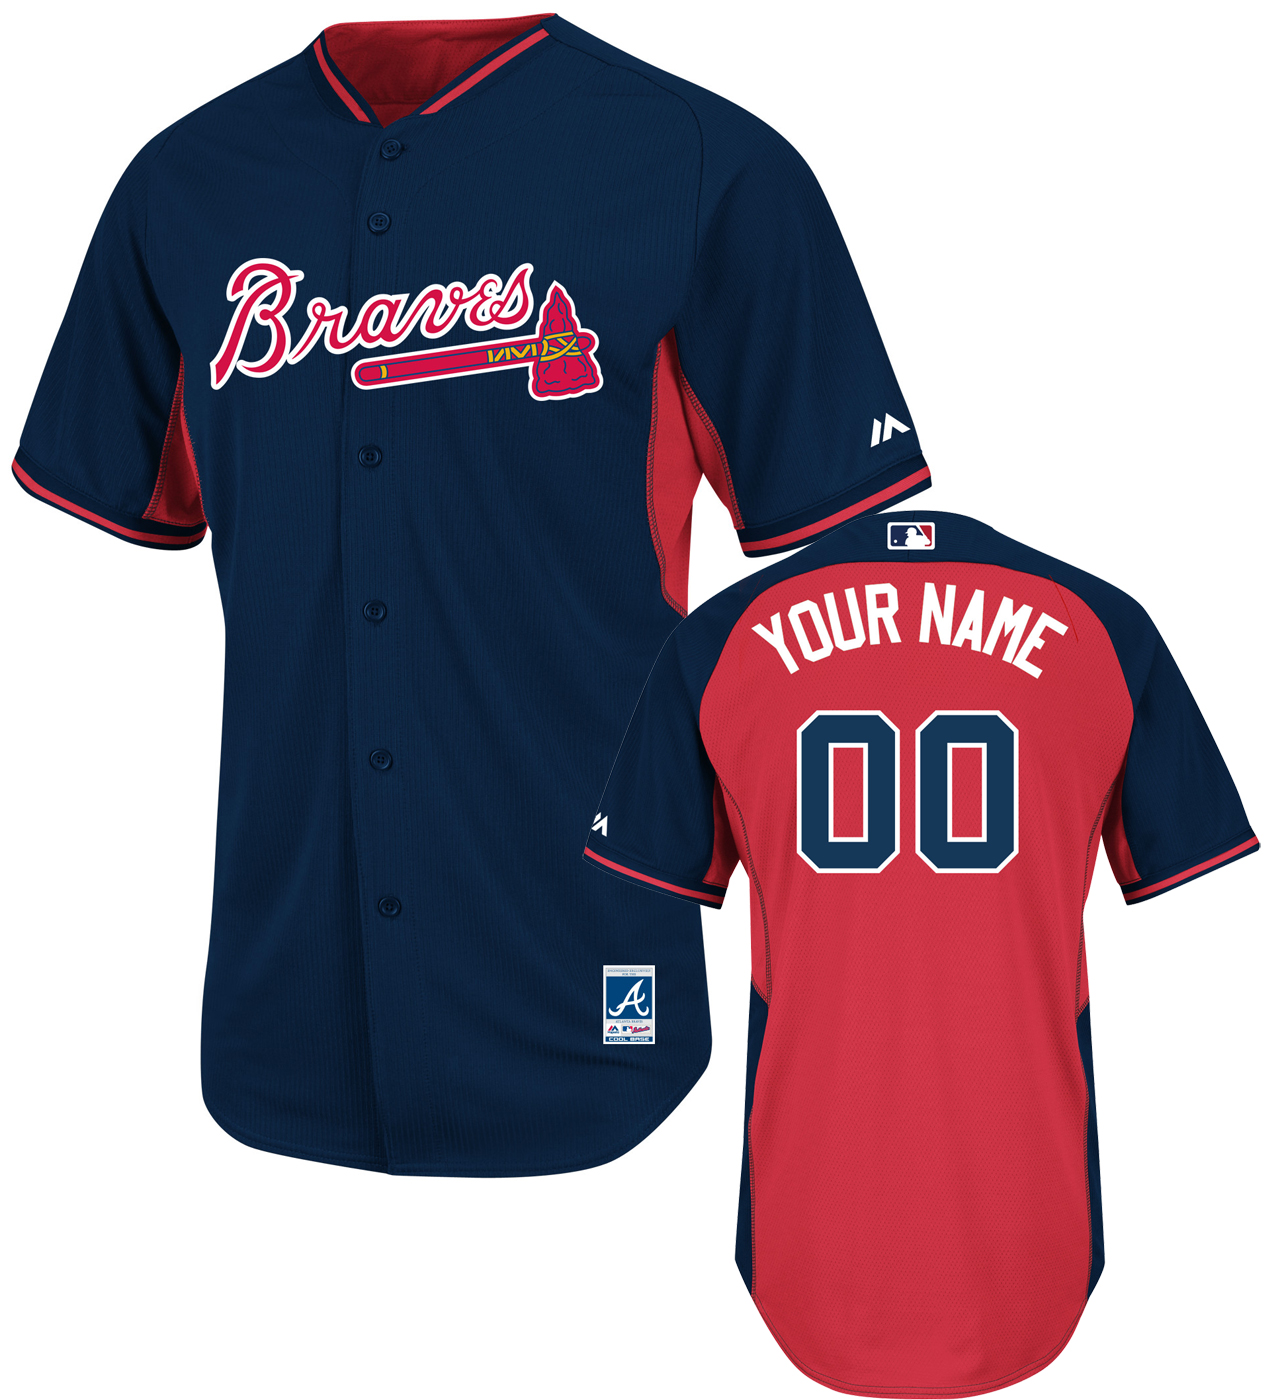 sports apparel jerseys and fan gear at fanaticscom - HD 1288×1400